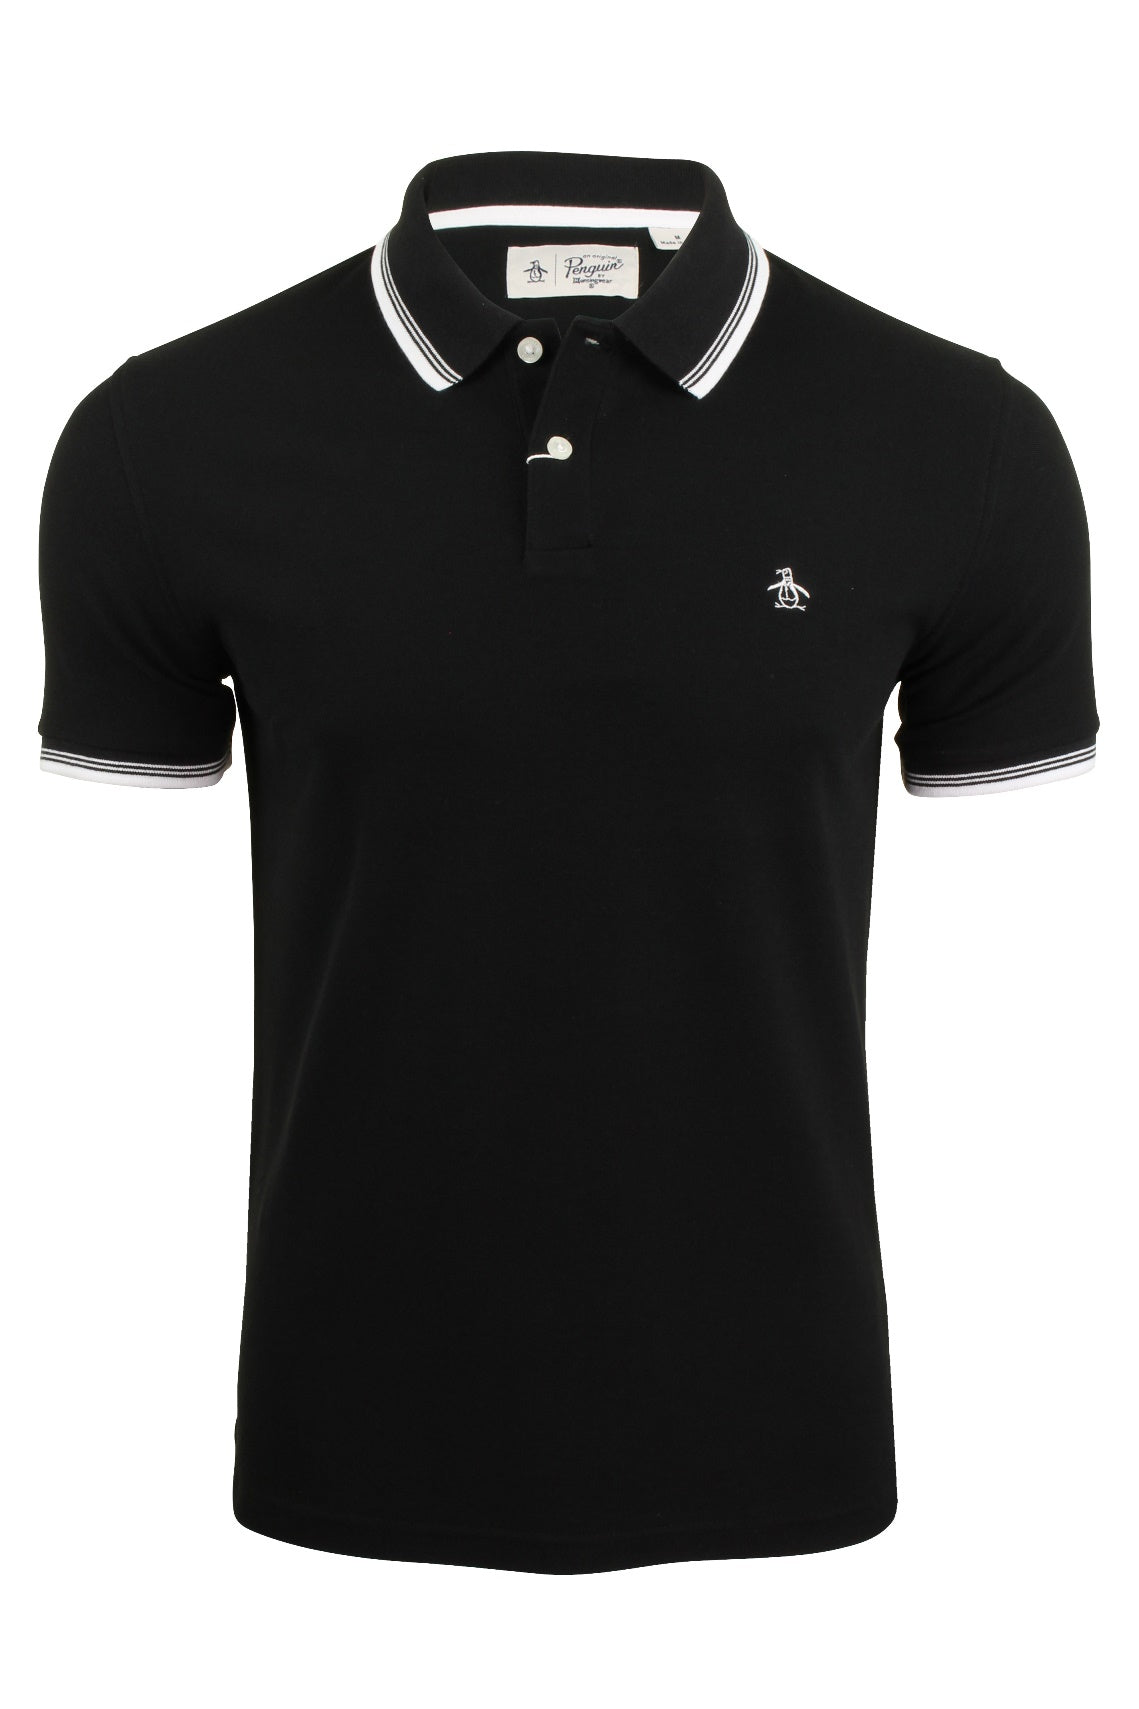 Mens Tipped Pique Polo T-Shirt by Original Penguin Short Sleeved-Main Image